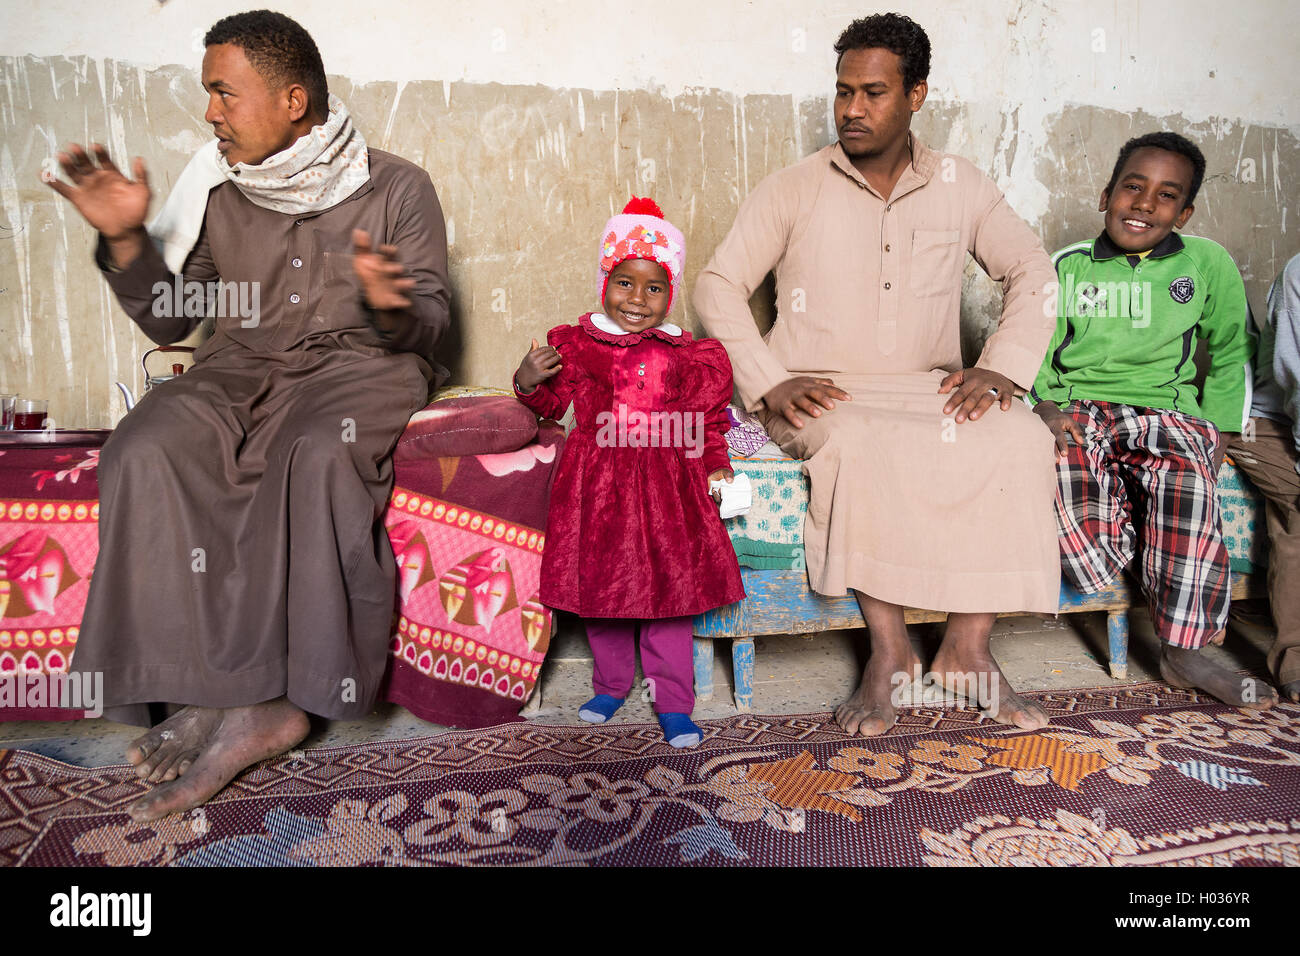 ASWAN, EGYPT - FEBRUARY 7, 2016: Local family from Nubian village on the Nile in their home. Stock Photo